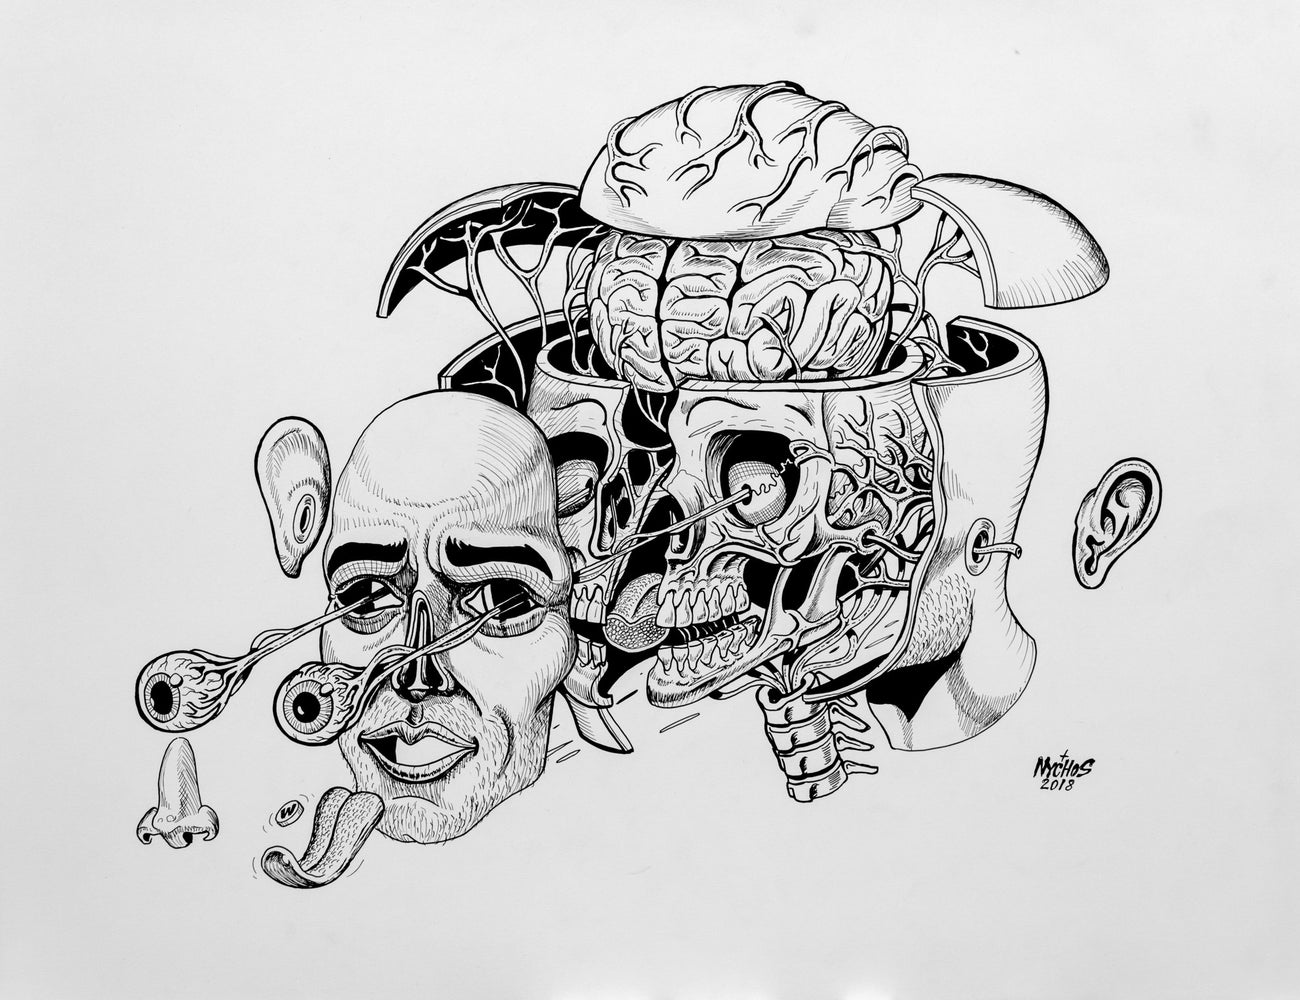 Nychos: Dissection of a Head (Drawing)